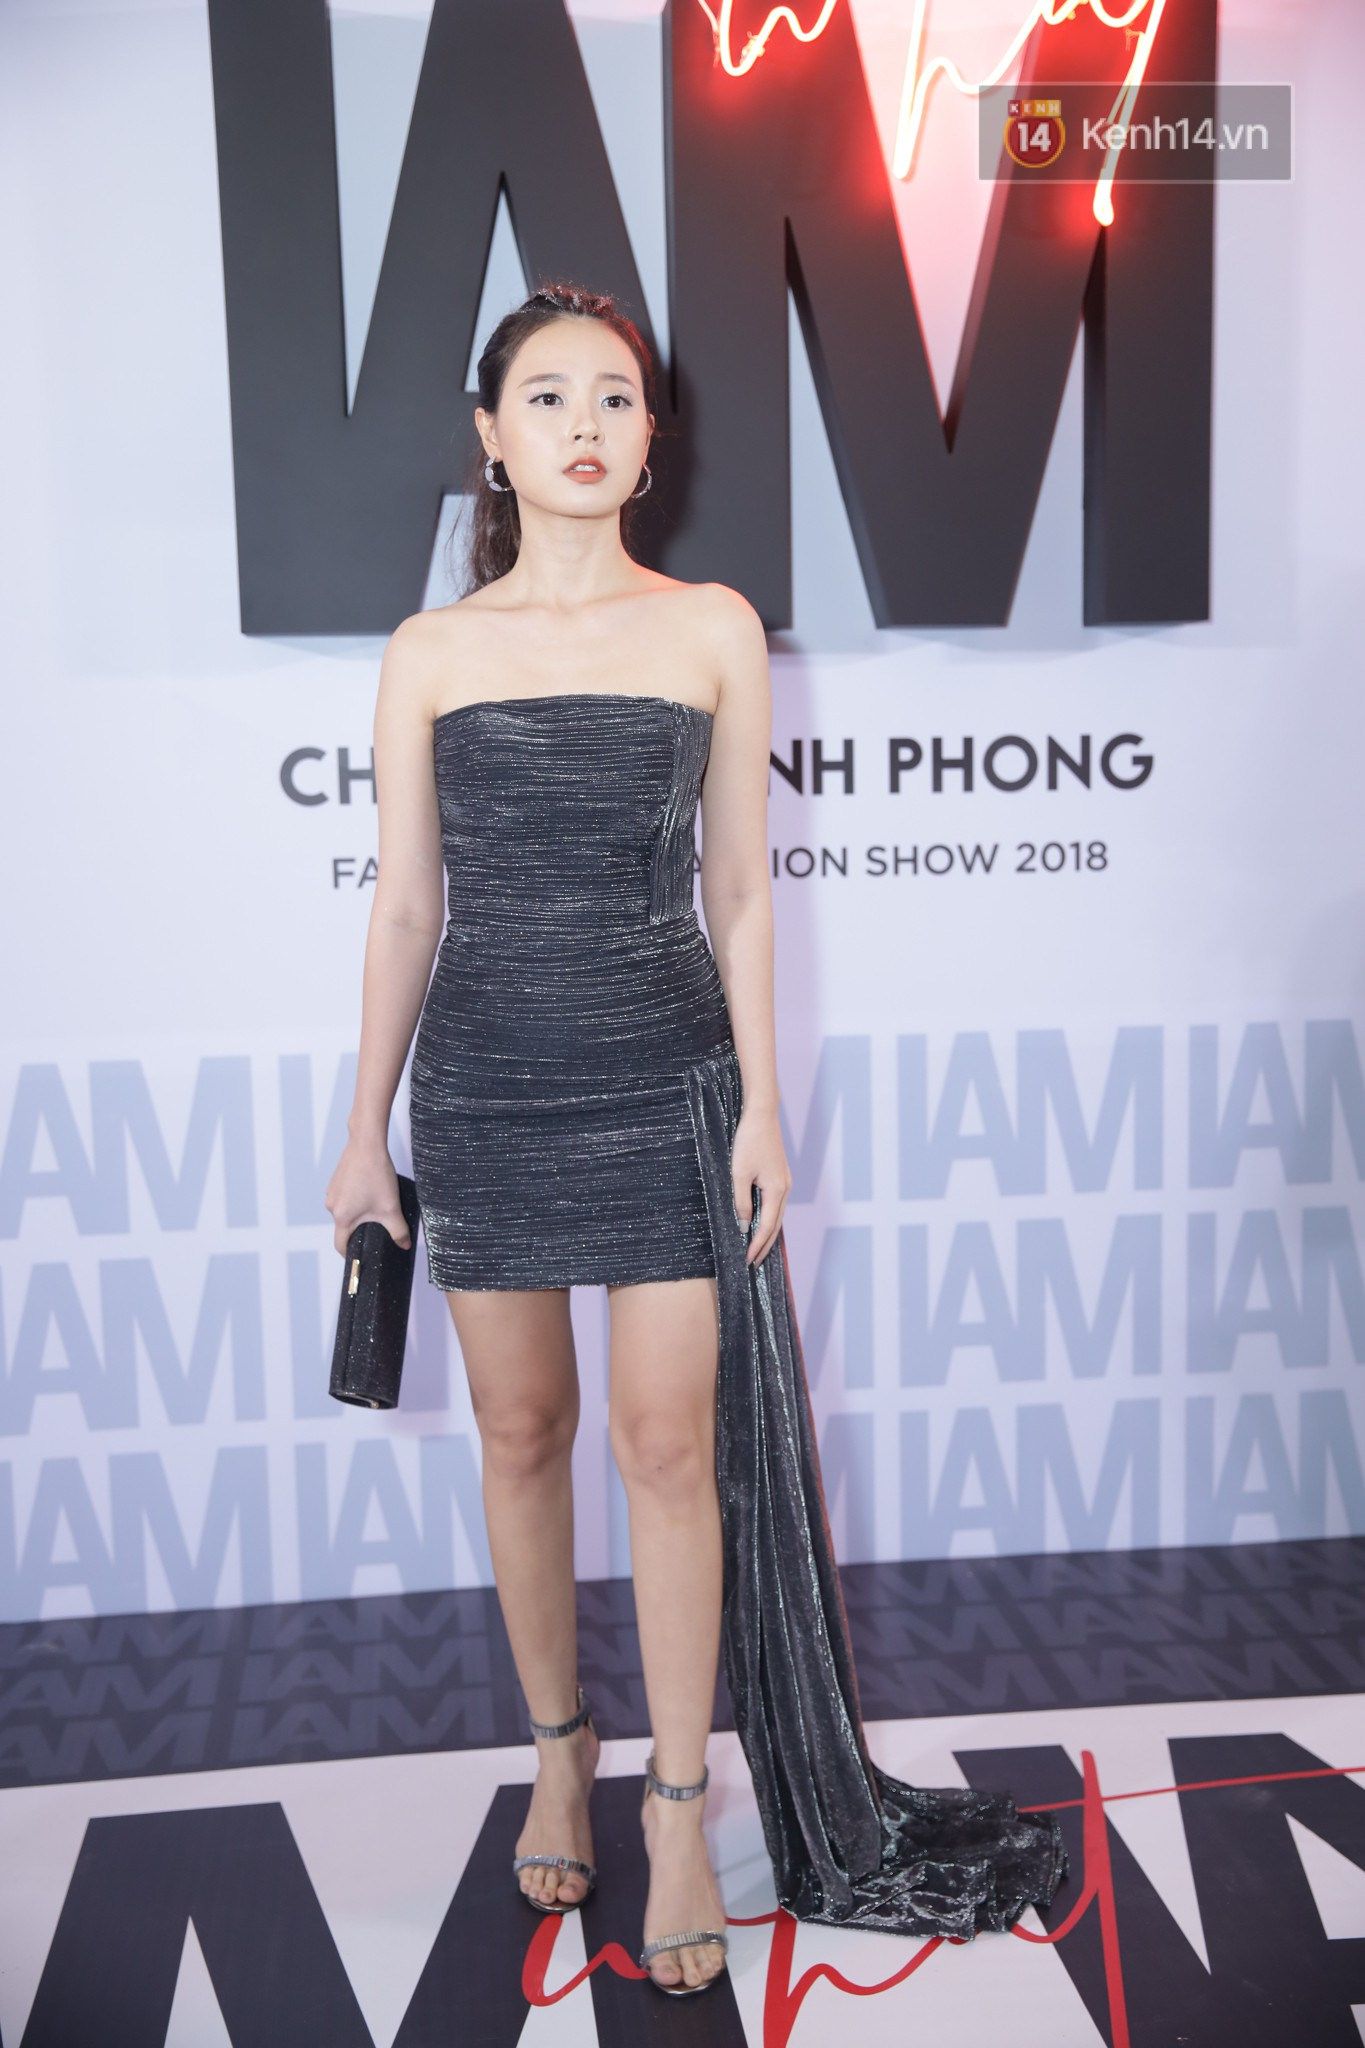 Red carpet Chung Thanh Phong show: Able for strange style, Quỳnh Anh Shyn crawled spiders with rain - Photo 23.